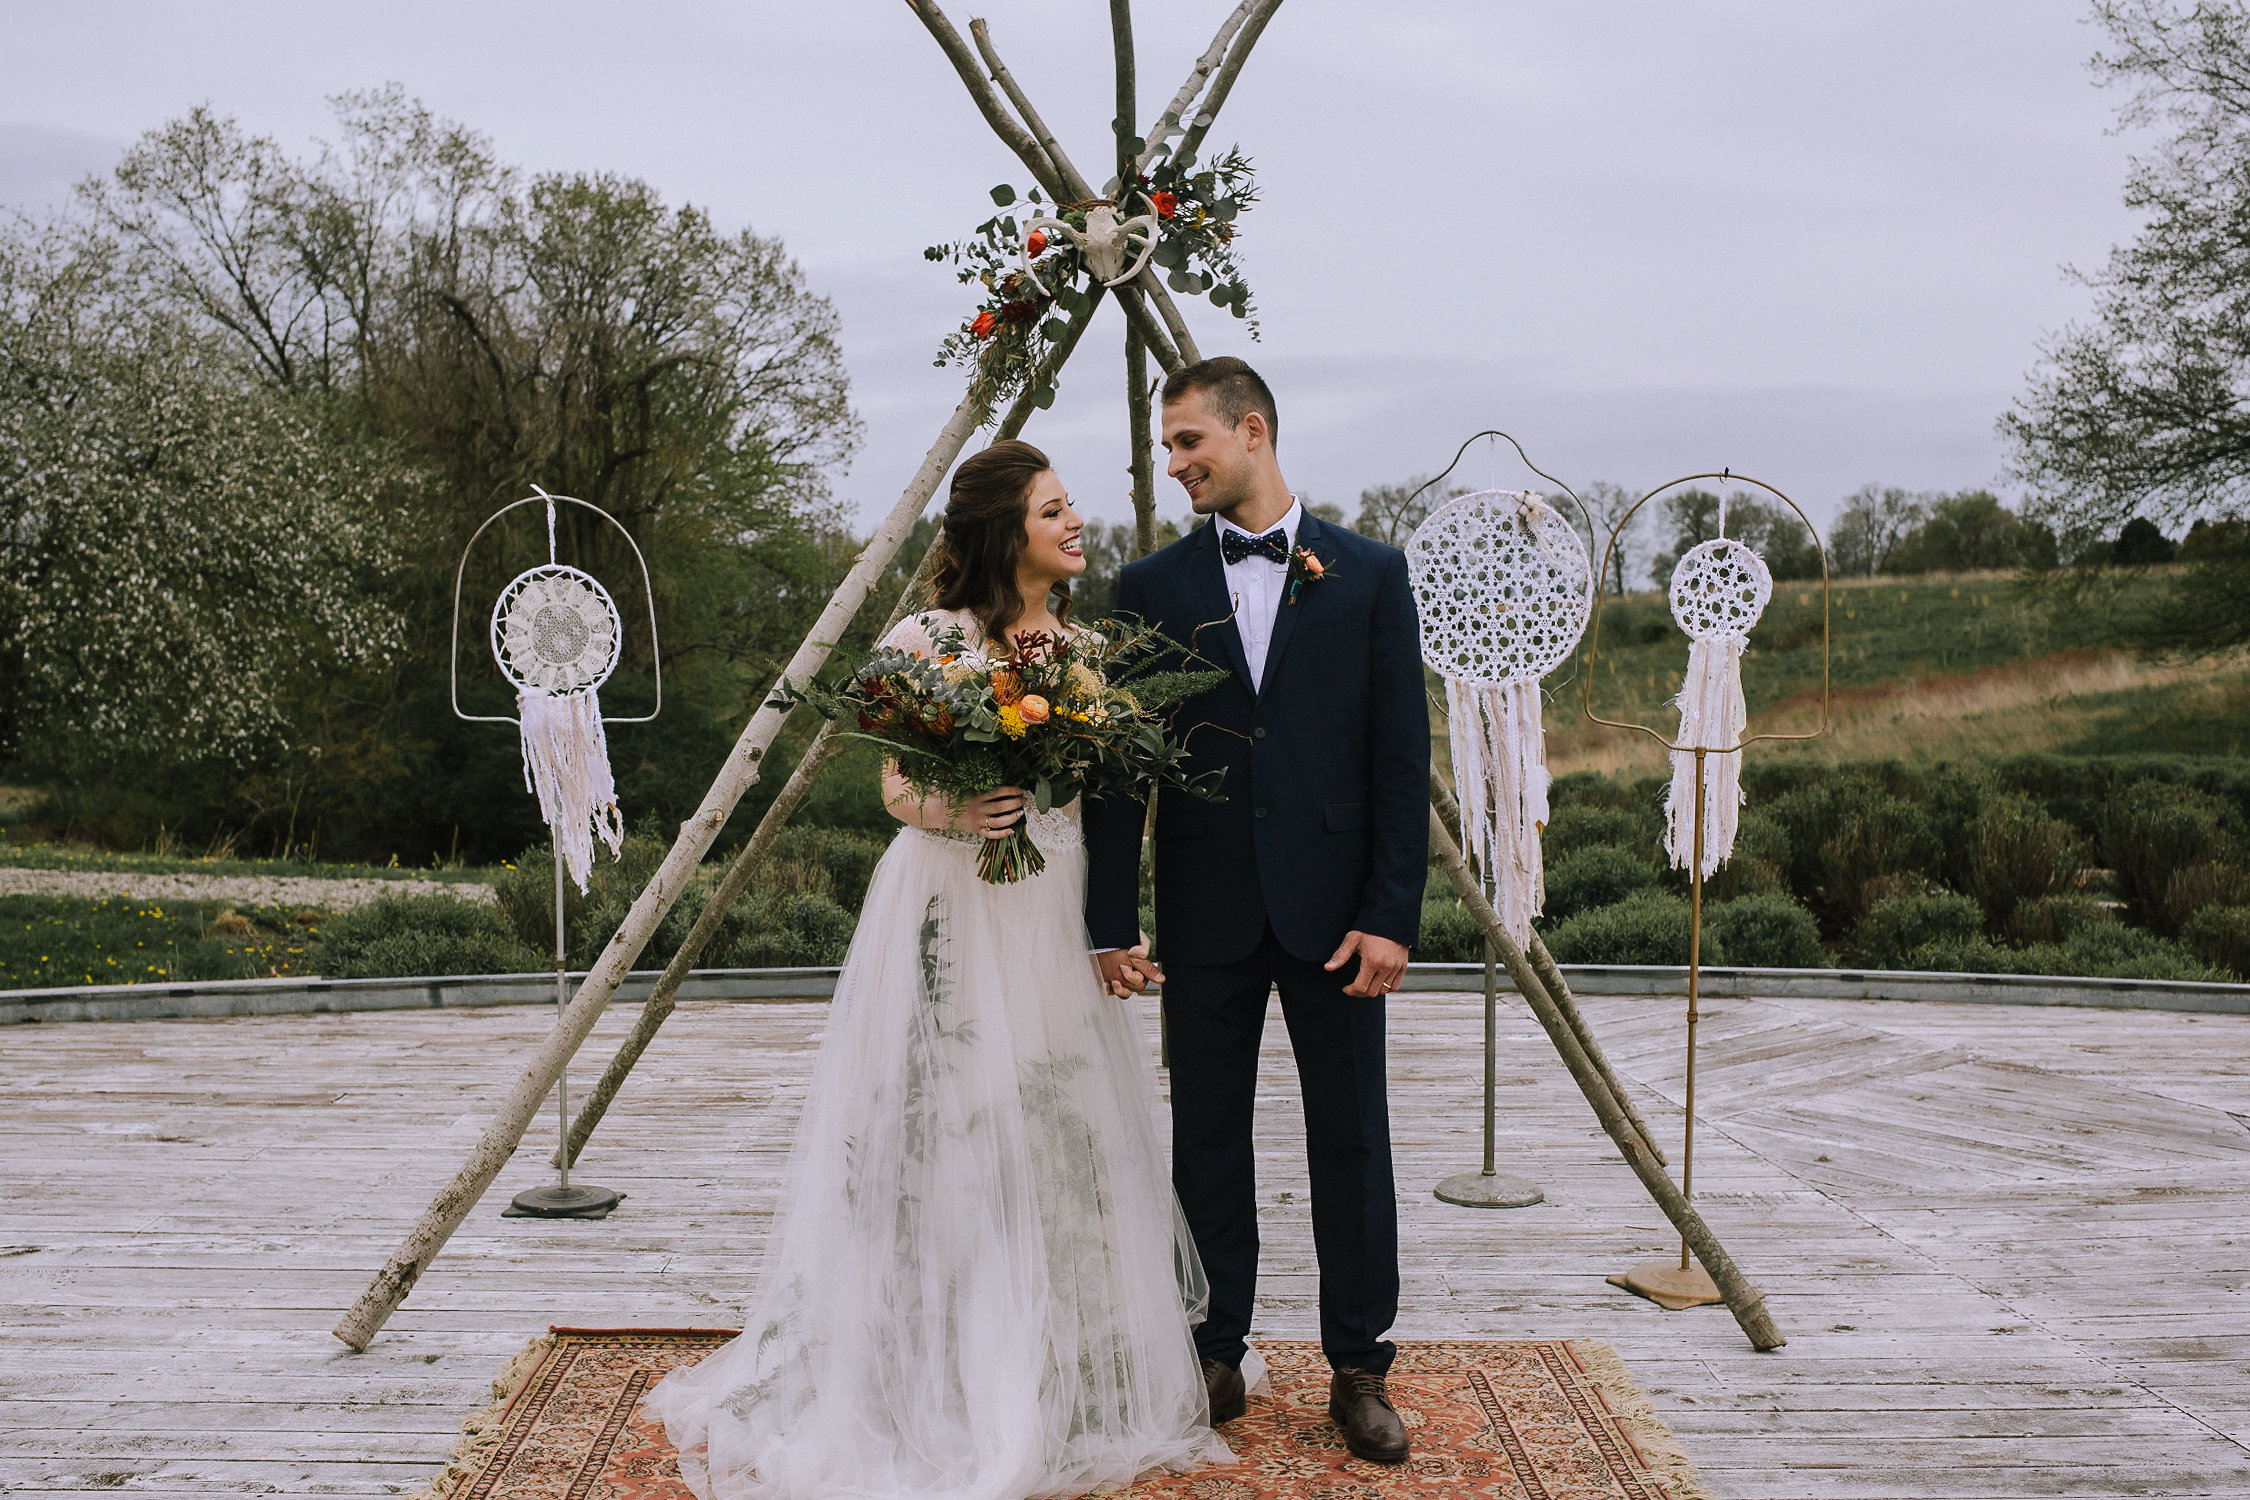 Wedding ceremony at Chatham University Eden Hall featuring a bohemian teepee, dream catchers and boho rug from Vintage Alley Rentals. Flowers by Community Flower Shop.